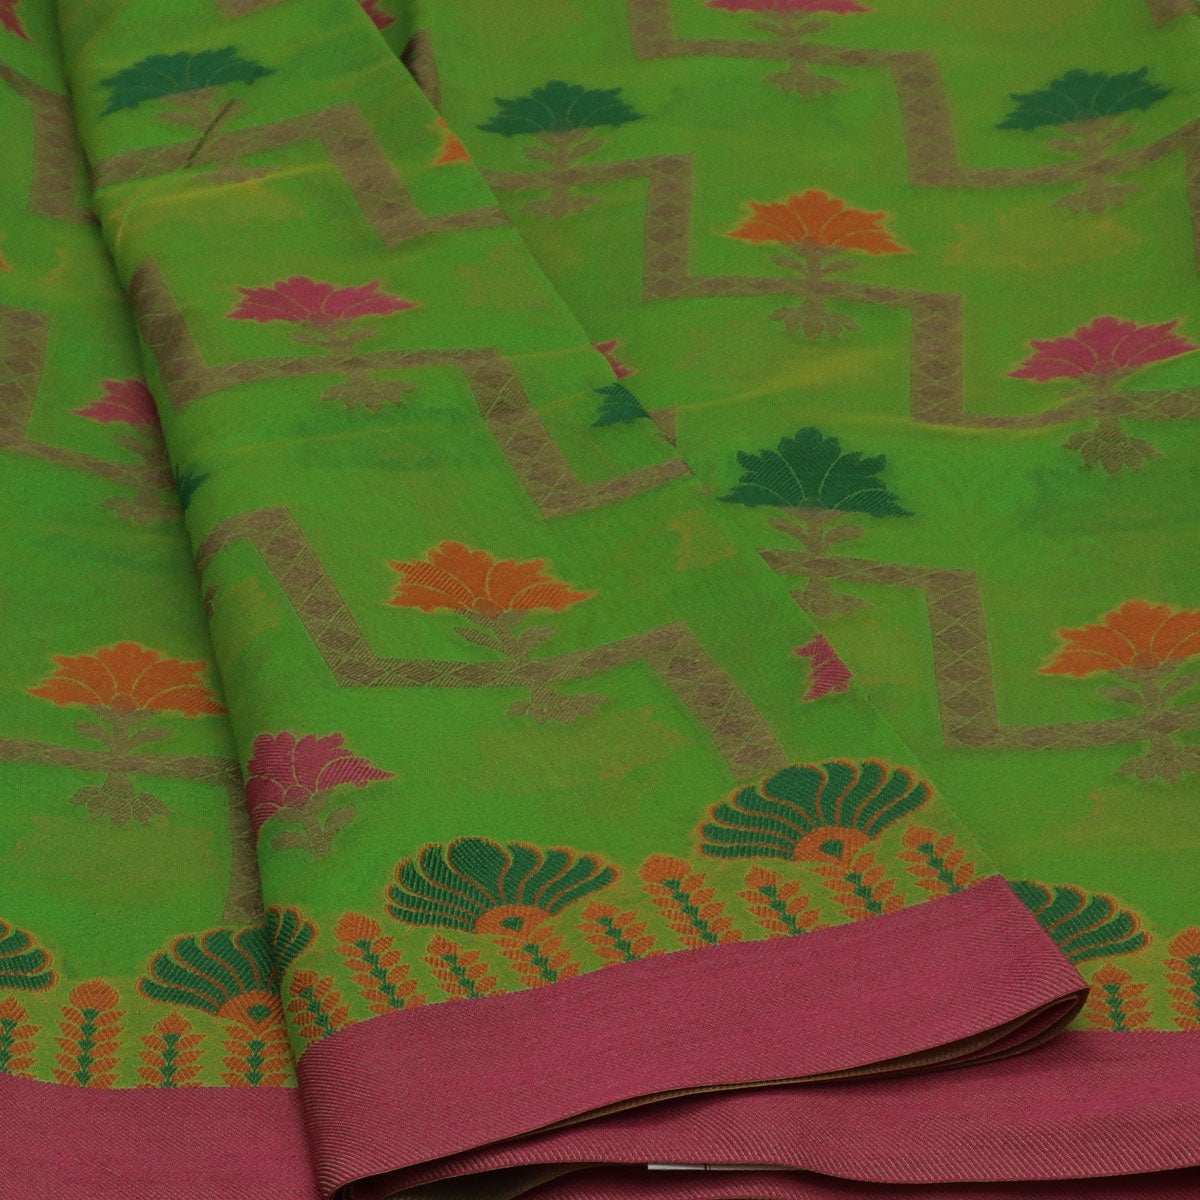 Banarasi Organza Saree Light Green and Pink with Simple border